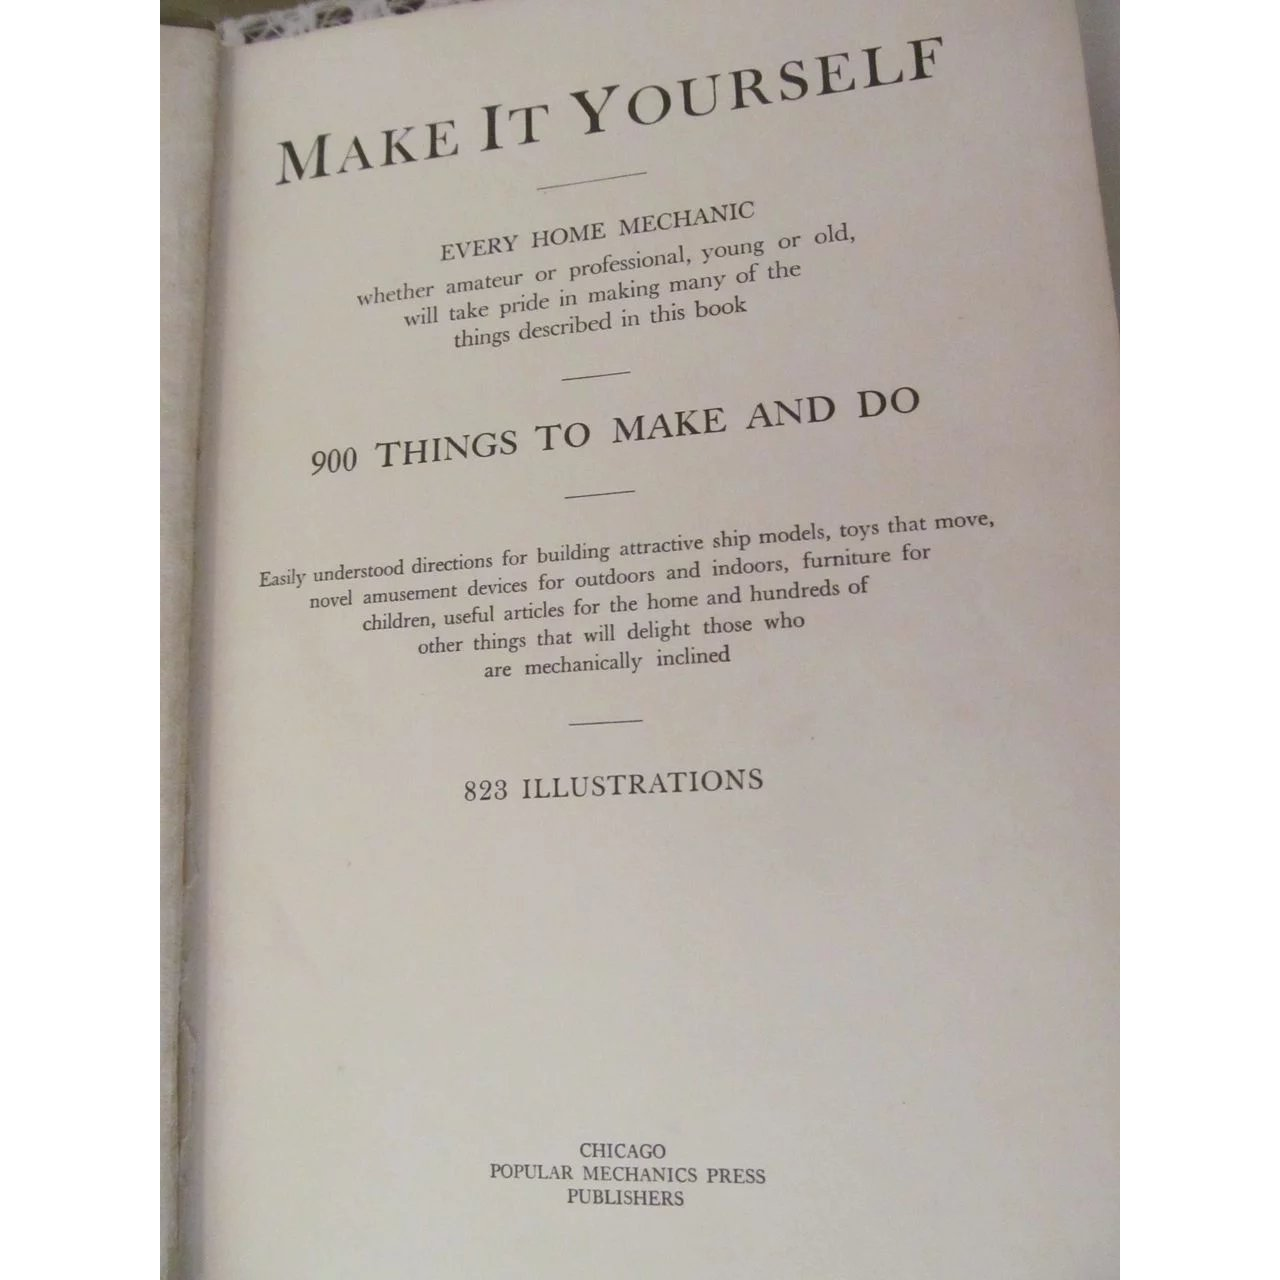 1927 make it yourself by popular mechanics 900 things to do 823 1927 make it yourself by popular mechanics 900 things to do 823 prairieland antiques ruby lane solutioingenieria Images